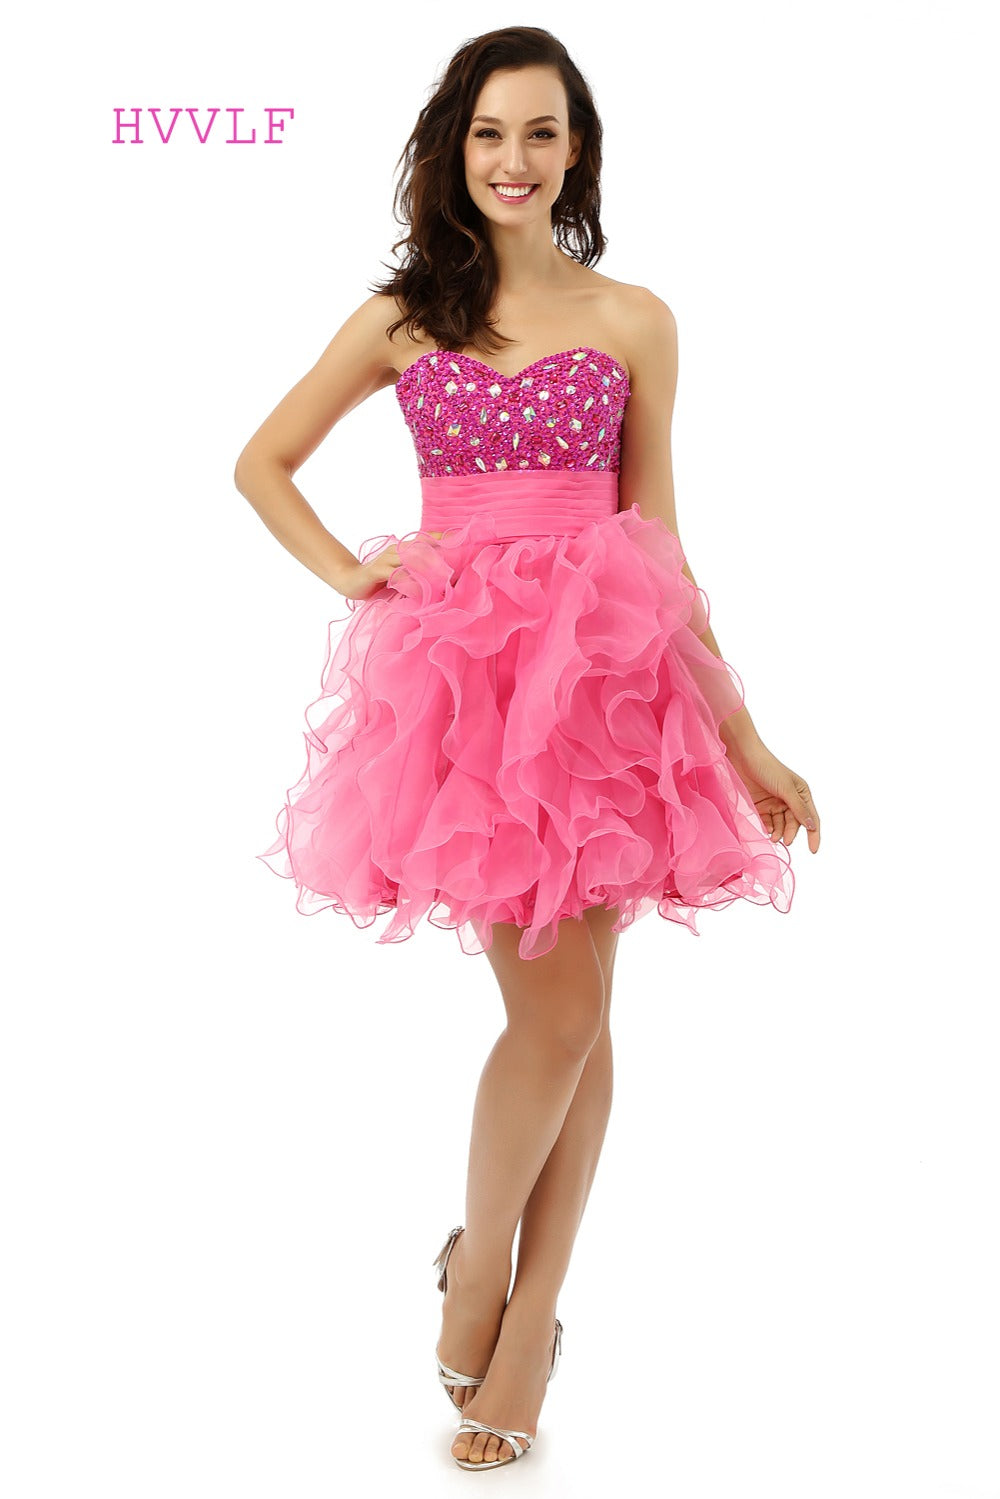 Backless 2019 Homecoming Dresses A-line Sweetheart Short Mini Fuchsia Organza Beaded Crystals Sweet 16 Cocktail Dresses